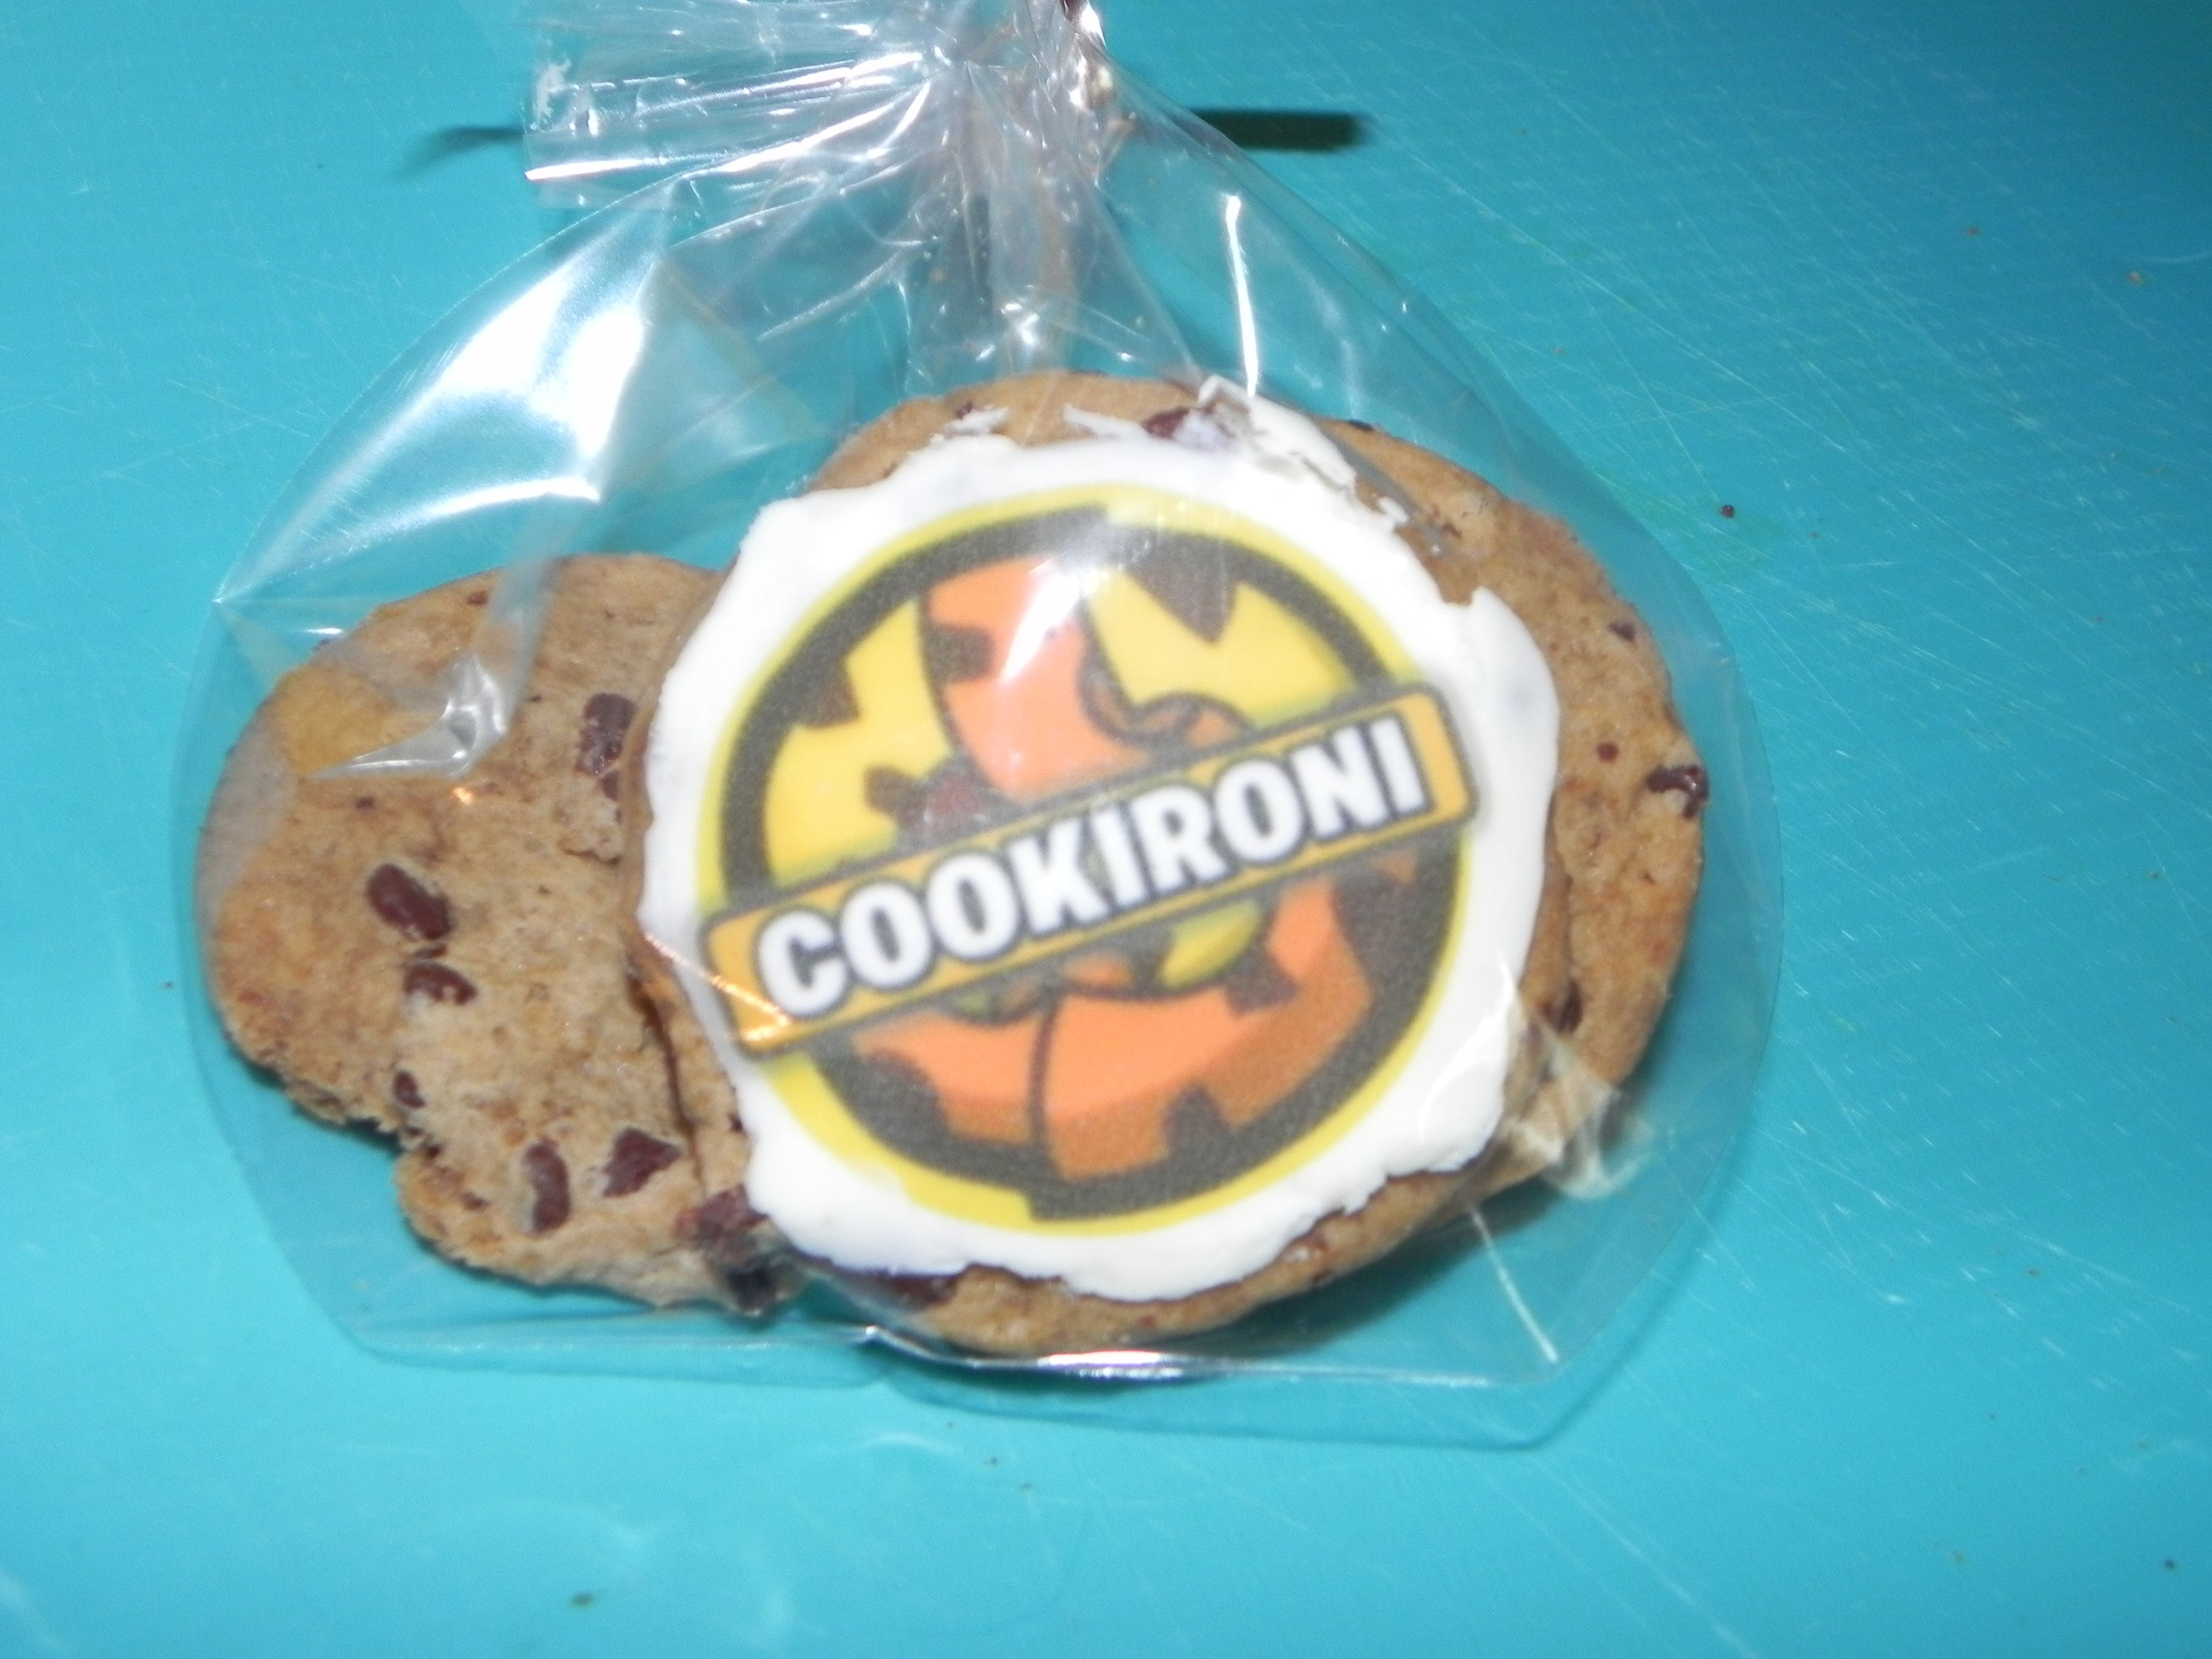 Our Mixel Birthday Party Favors - Cookironi's